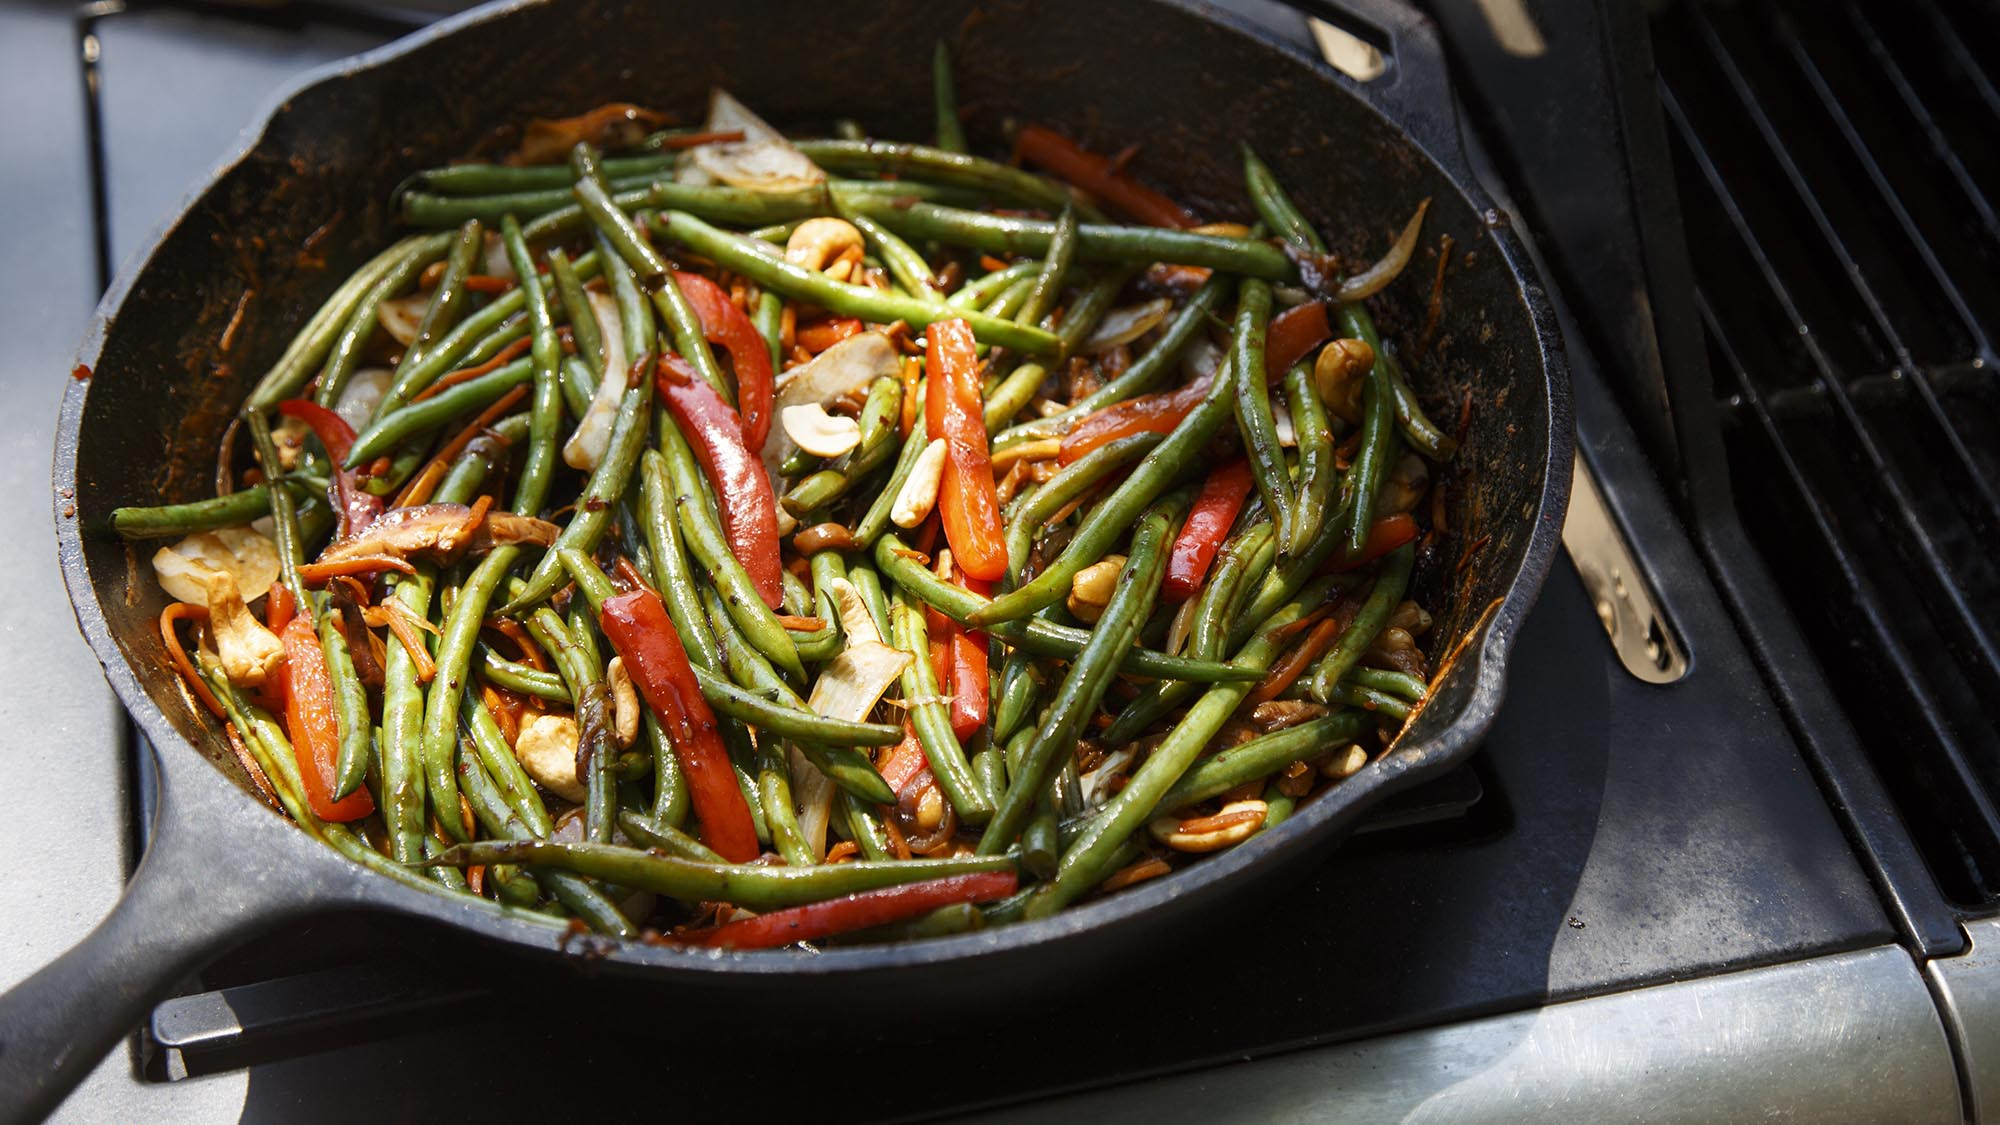 cast_iron_vegetable_stir_fry_2000x1125.jpg